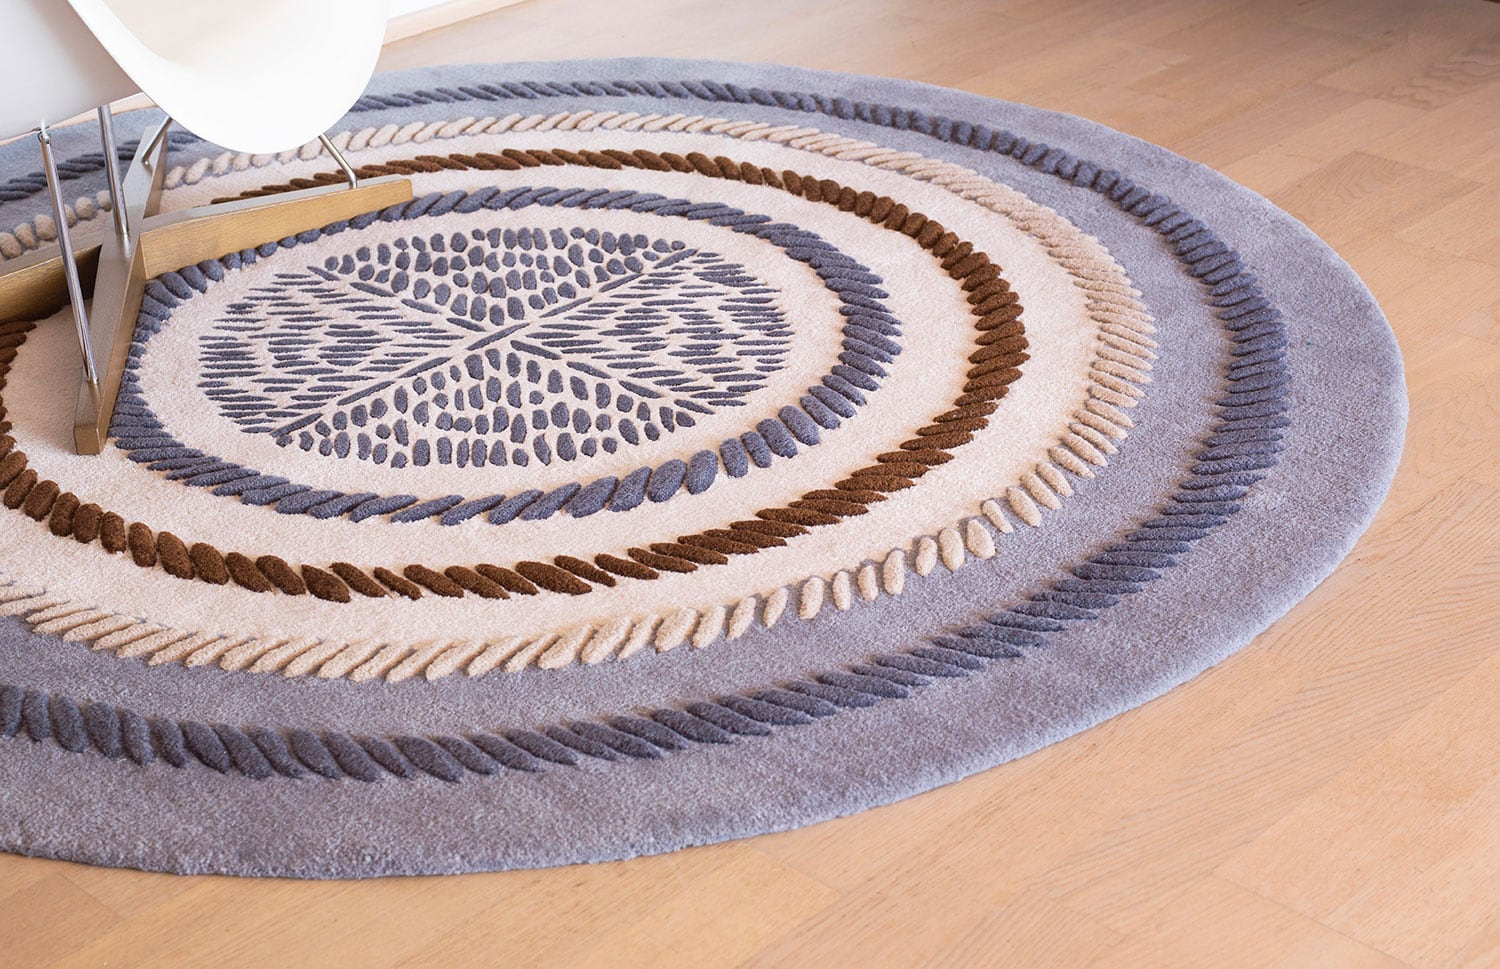 Pedres rug collection is inspired by centuries of architectural history